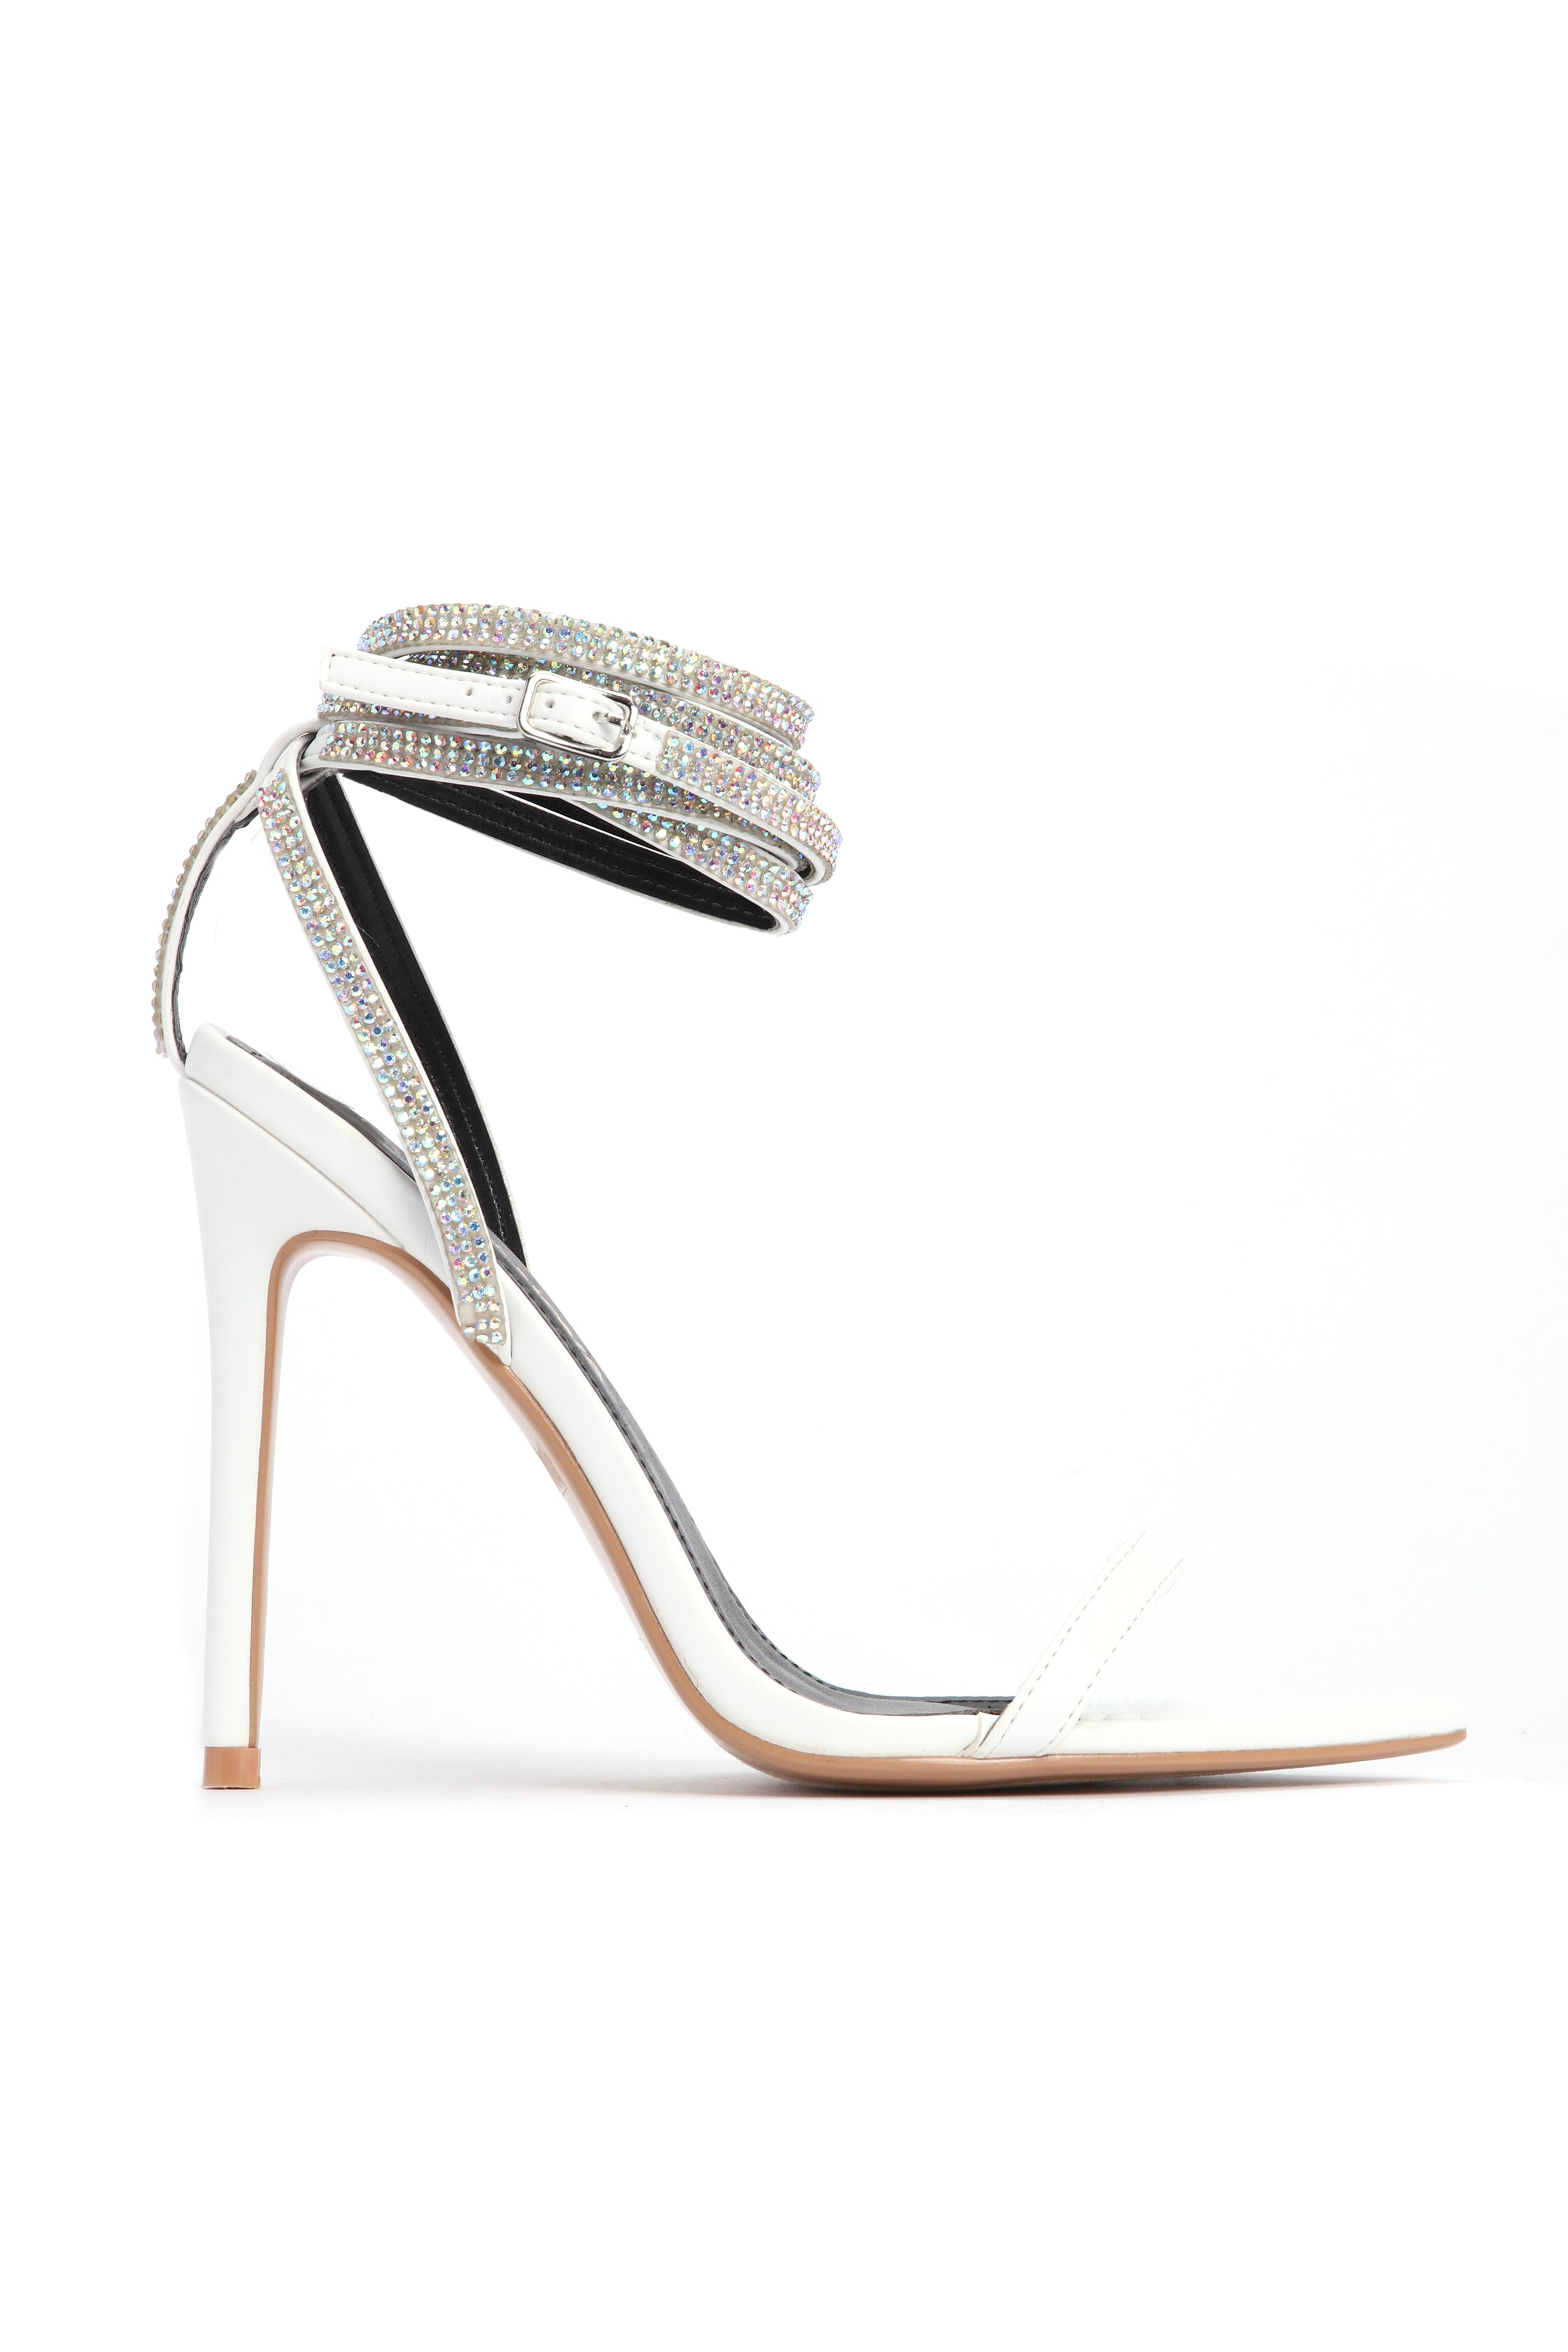 4886c1d4447 All About That Sass Heeled Sandal - White